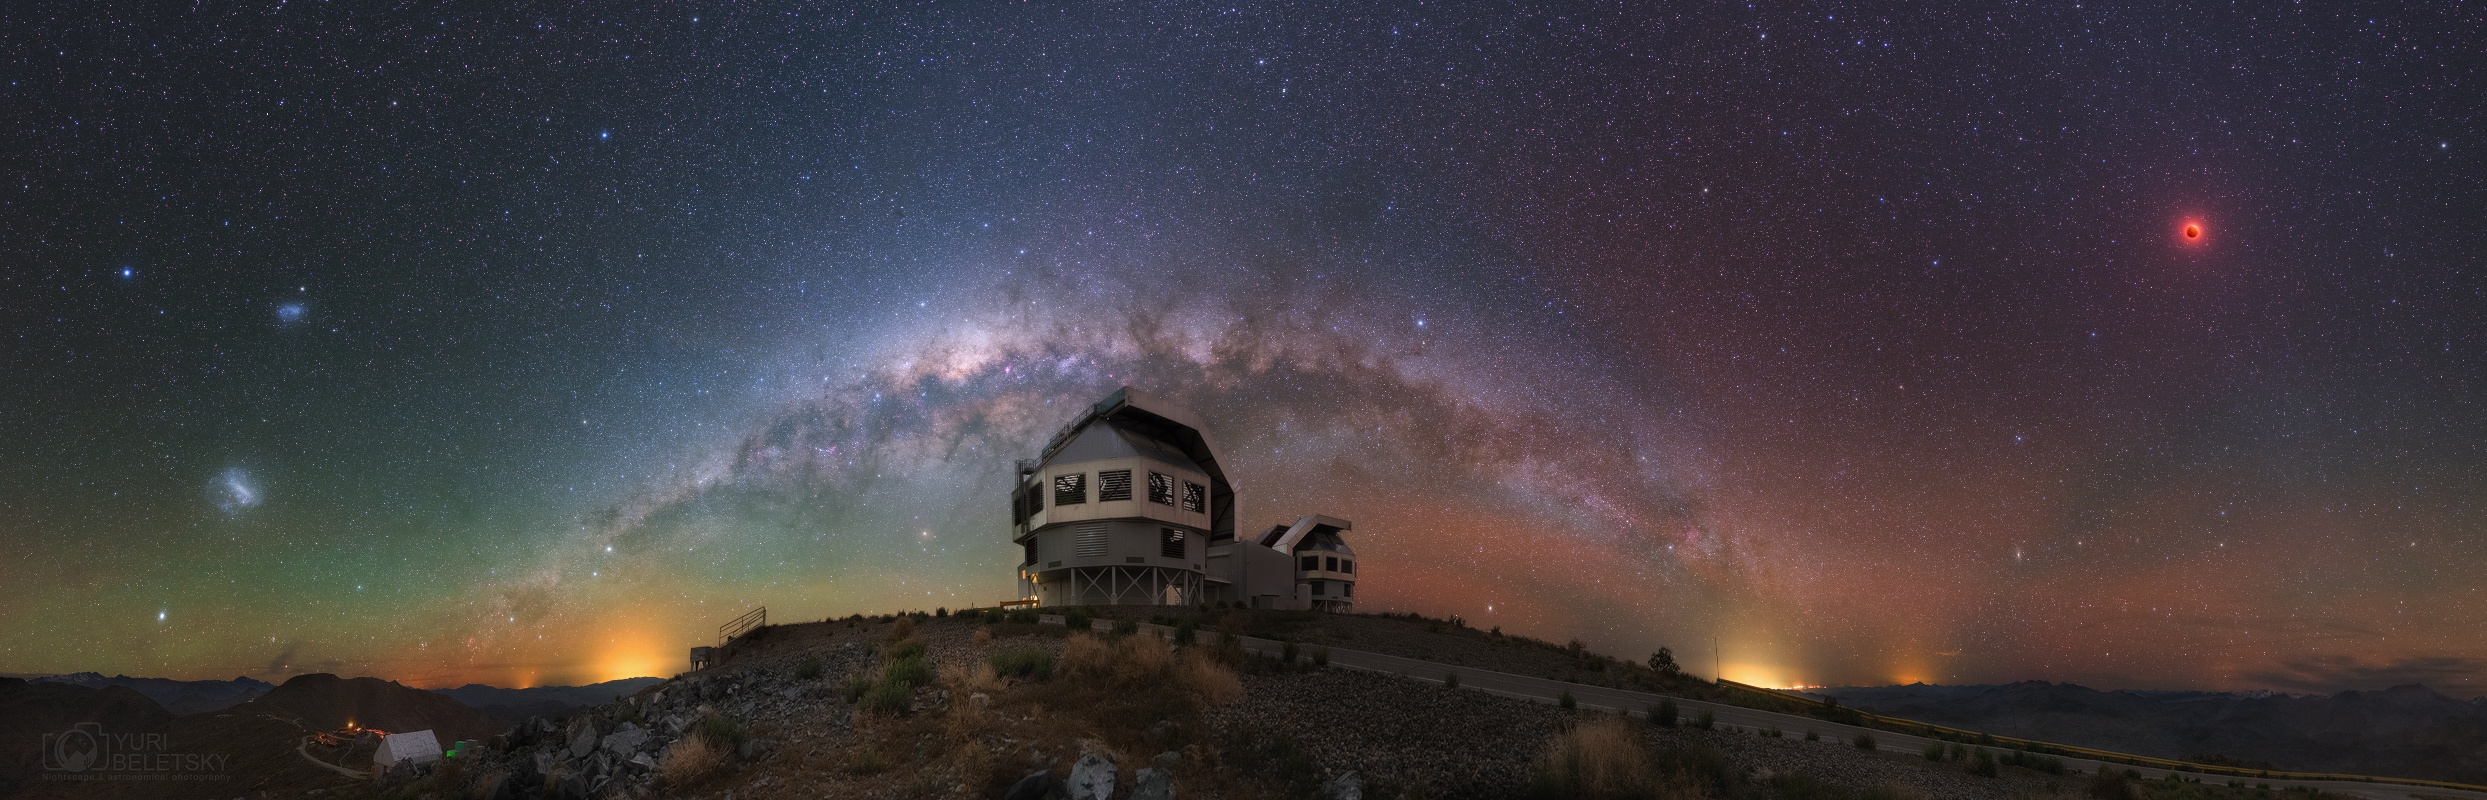 APOD: 2015 October 1 - Eclipsed in Southern Skies